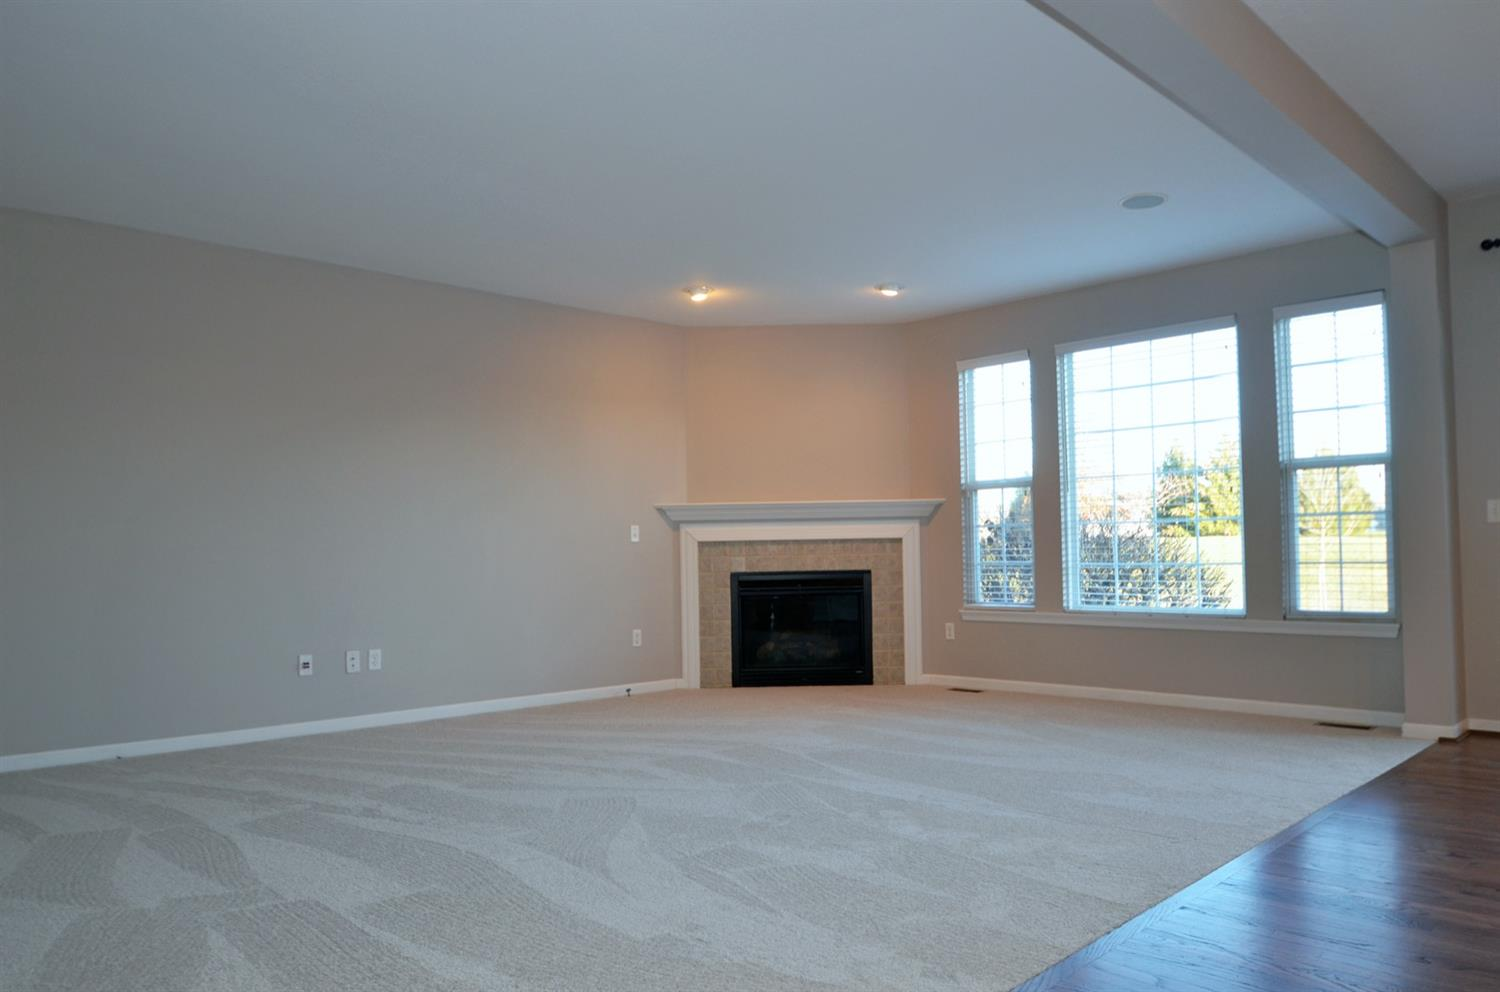 Plenty of light from the oversized windows. Check out the cozy gas corner fireplace and mantel.